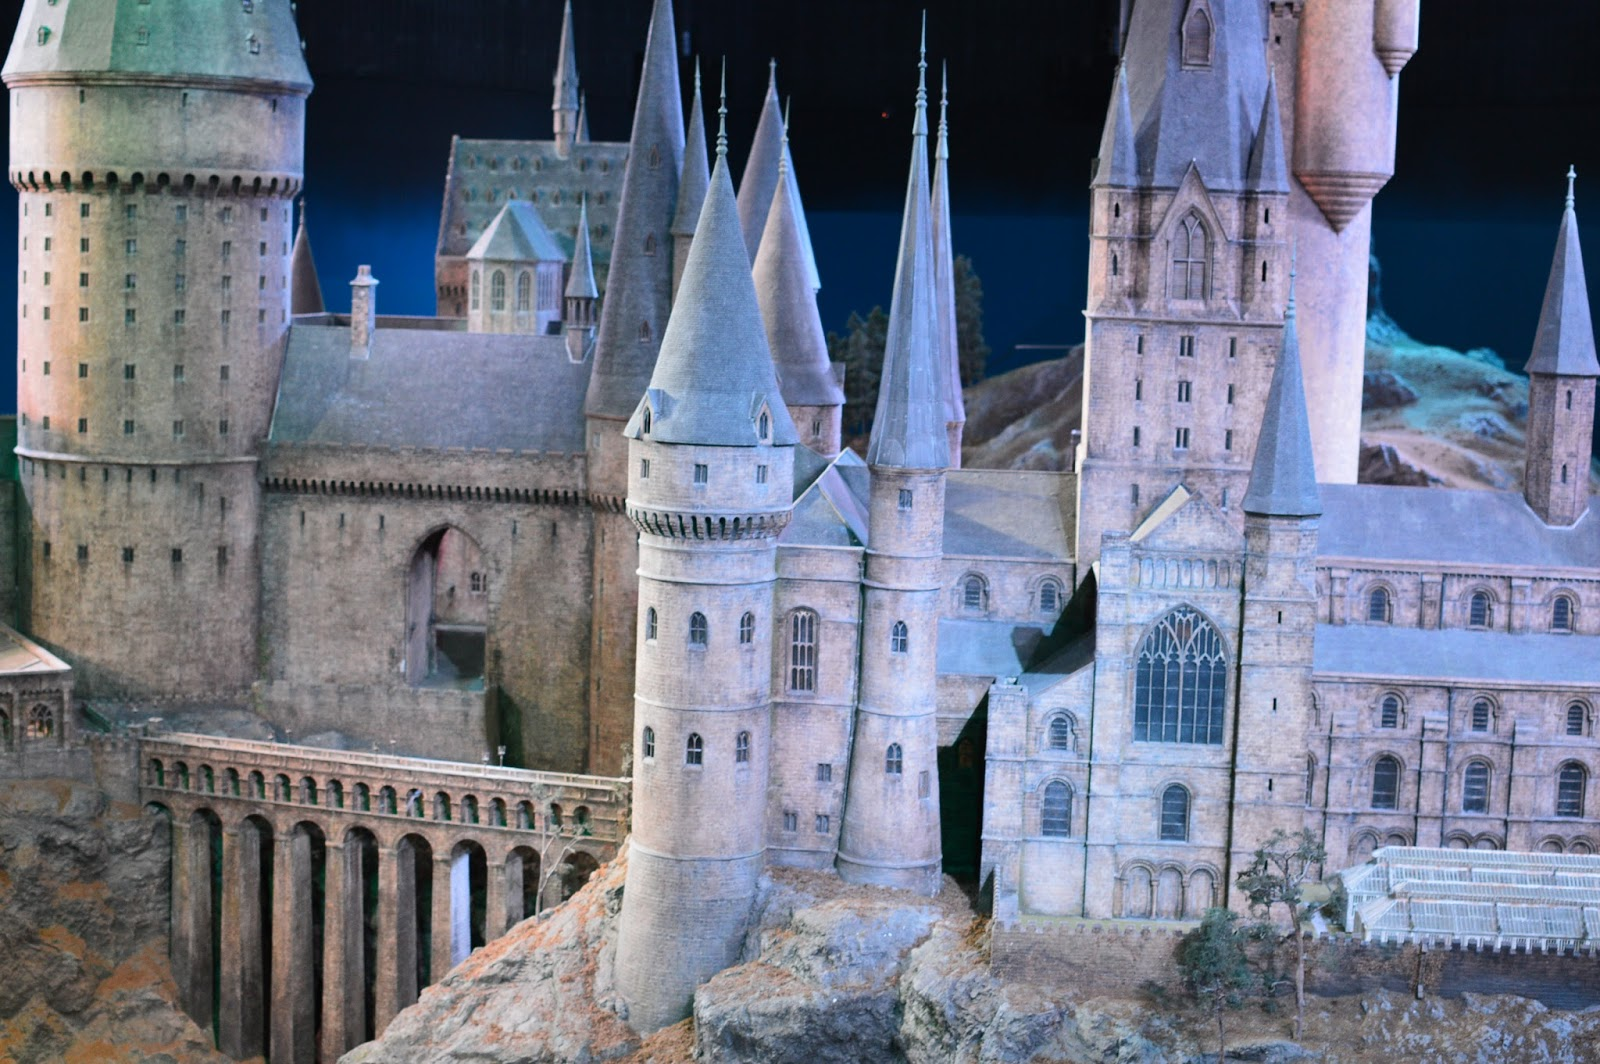 model of hogwarts castle | what do you see during the harry potter studio tour london | what do you see at the making of harry potter tour | harry potter studio tour tips |  harry potter wb studio tour london review  review of harry potter studio tour in london  is the harry potter tour worth it  review of the harry potter studio tour in london  the making of harry potter wb studio tour review